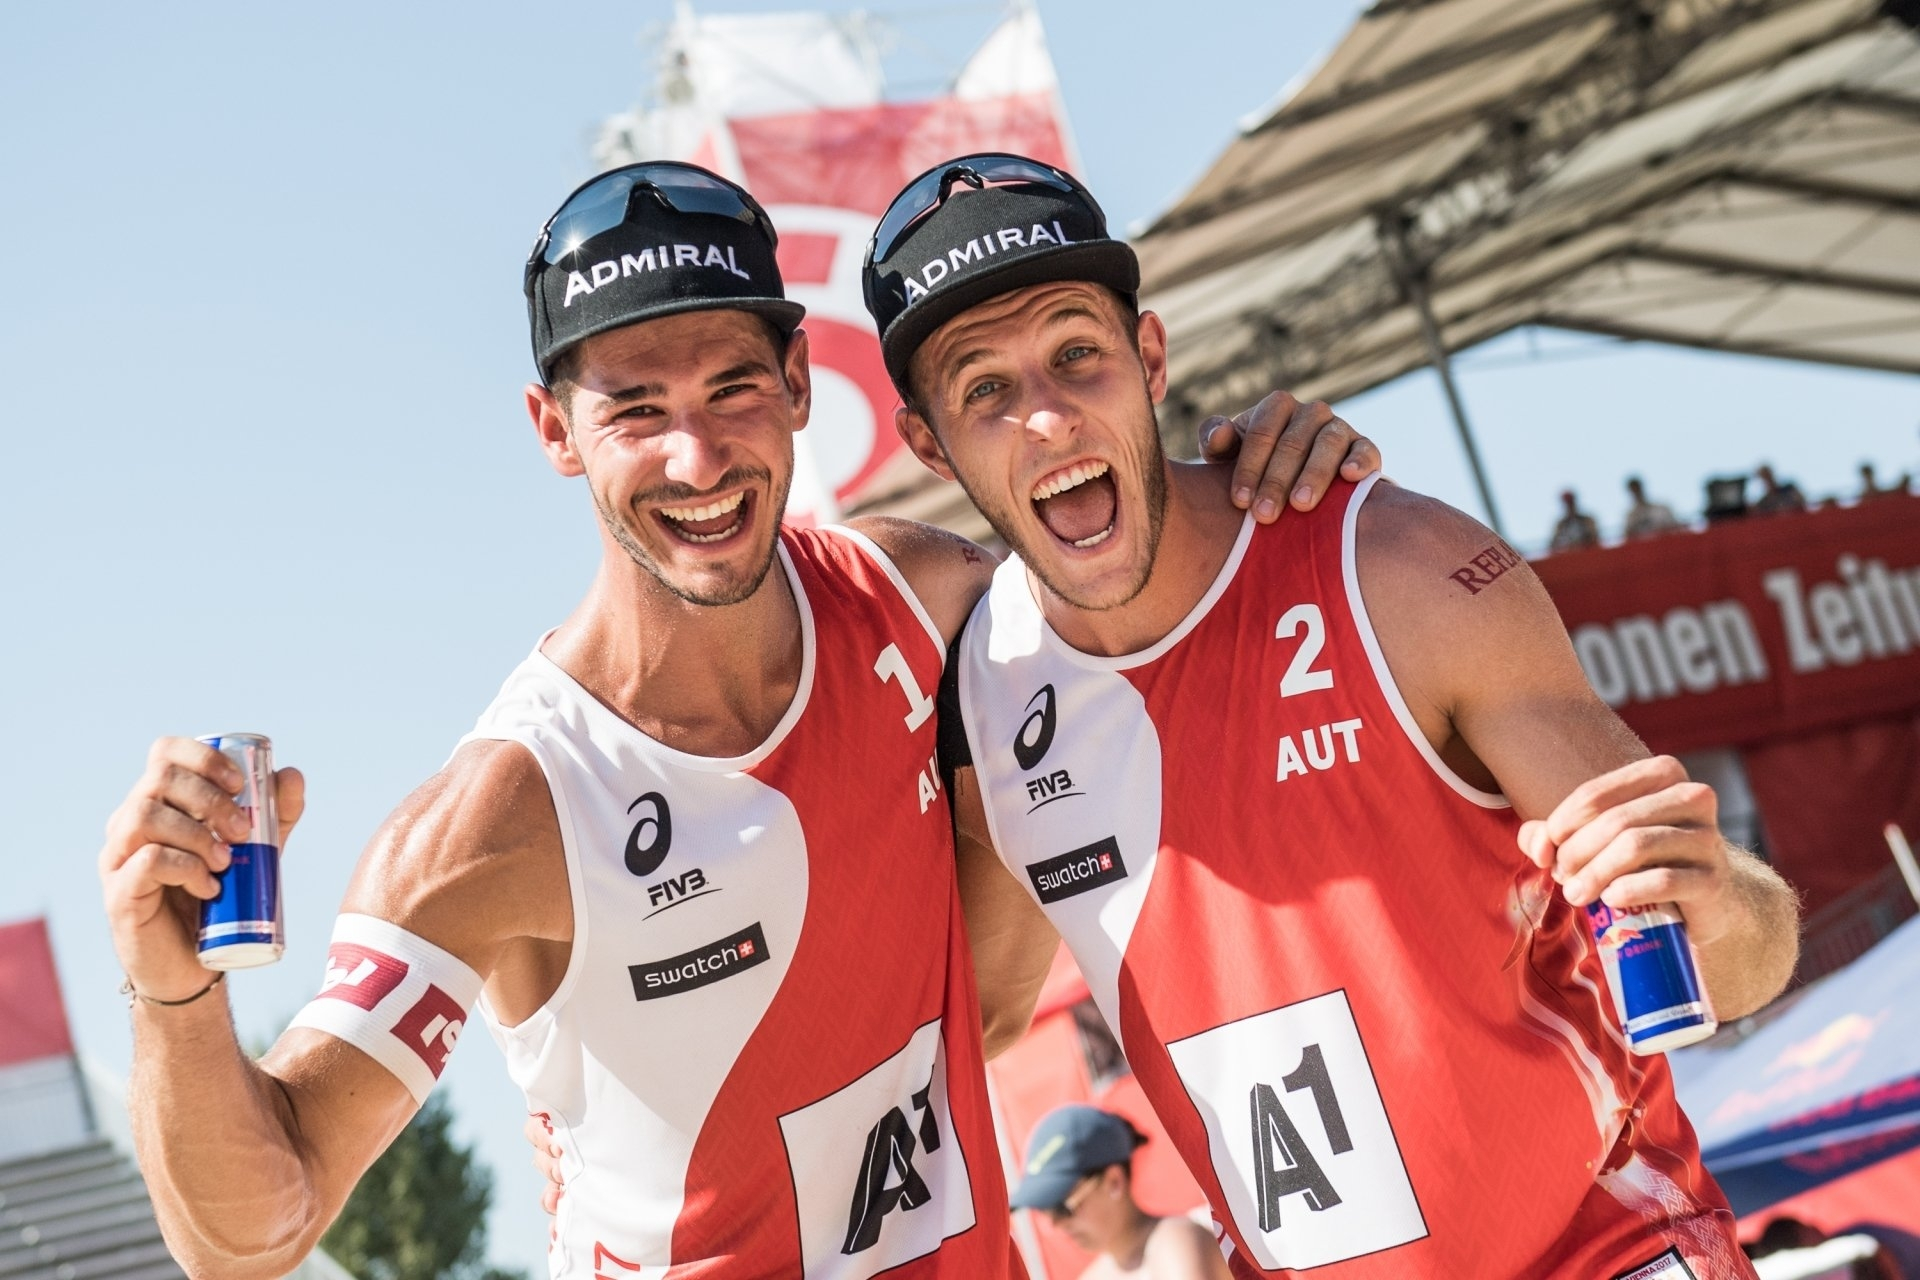 Martin (left) and Moritz all smiles during last year's World Championships in Vienna